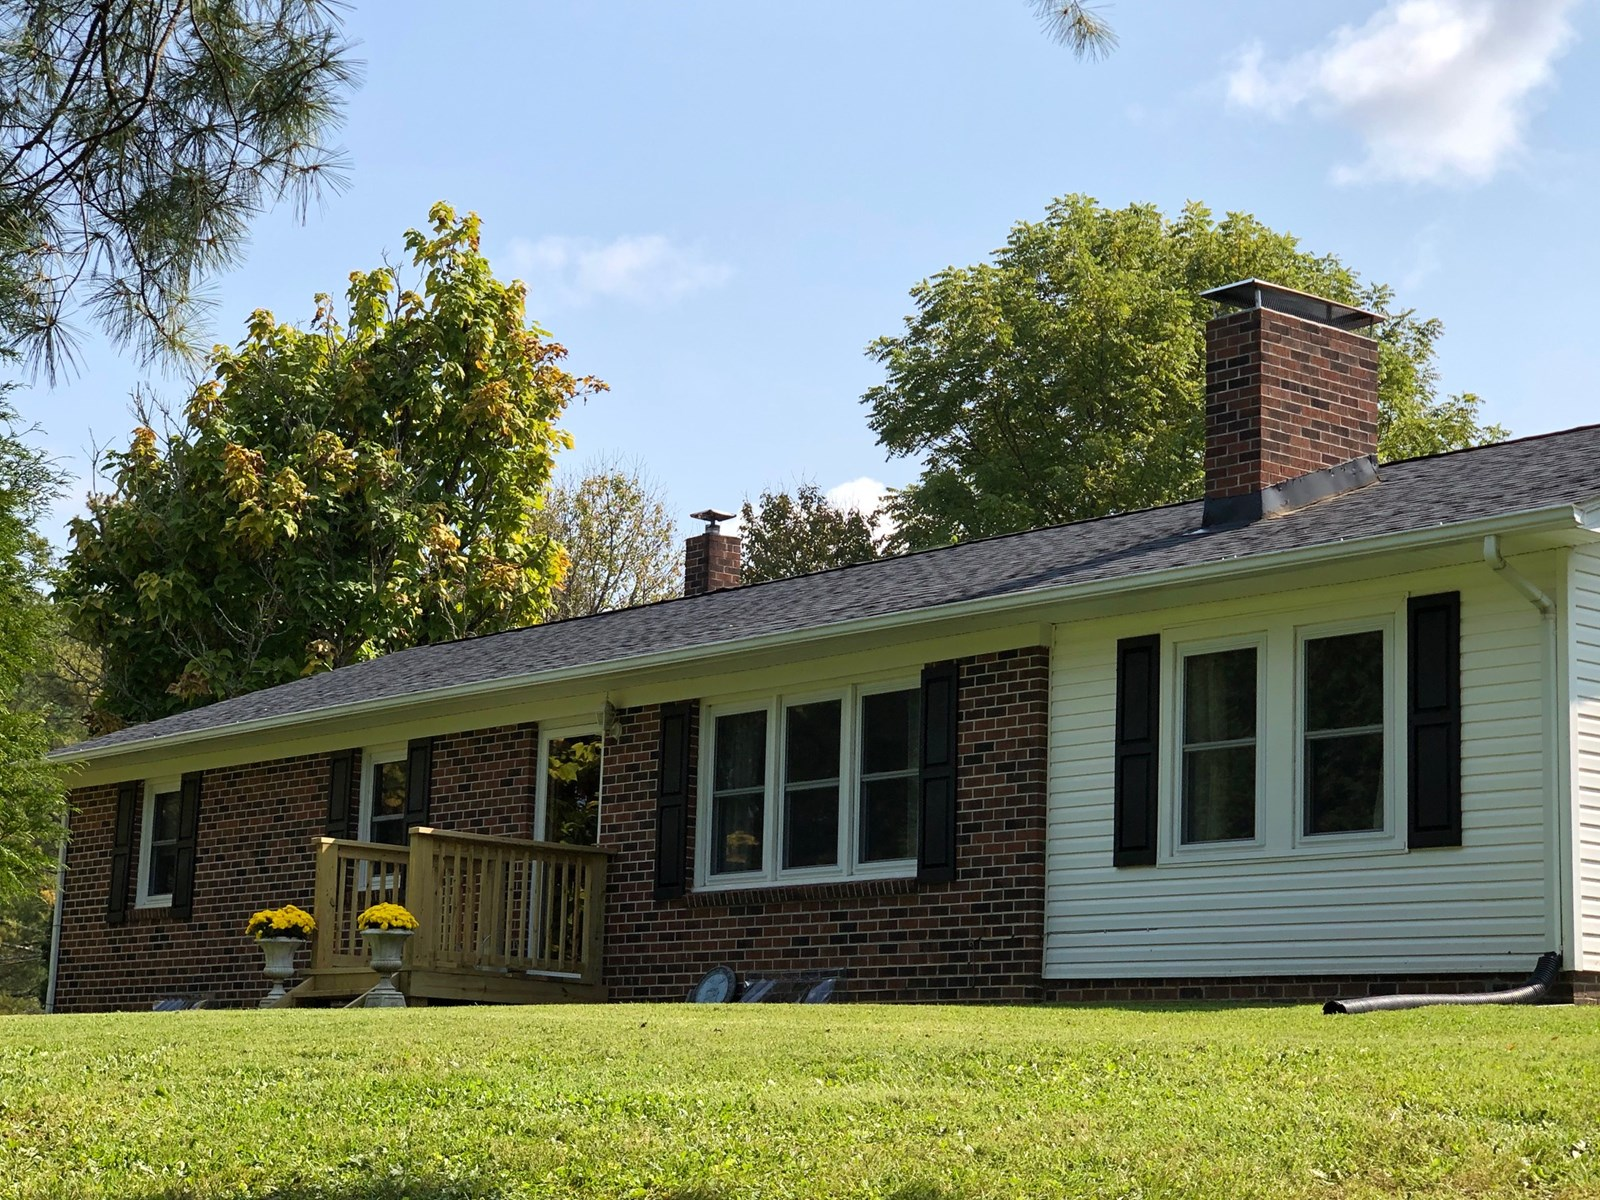 Brick Ranch for Sale in Floyd VA